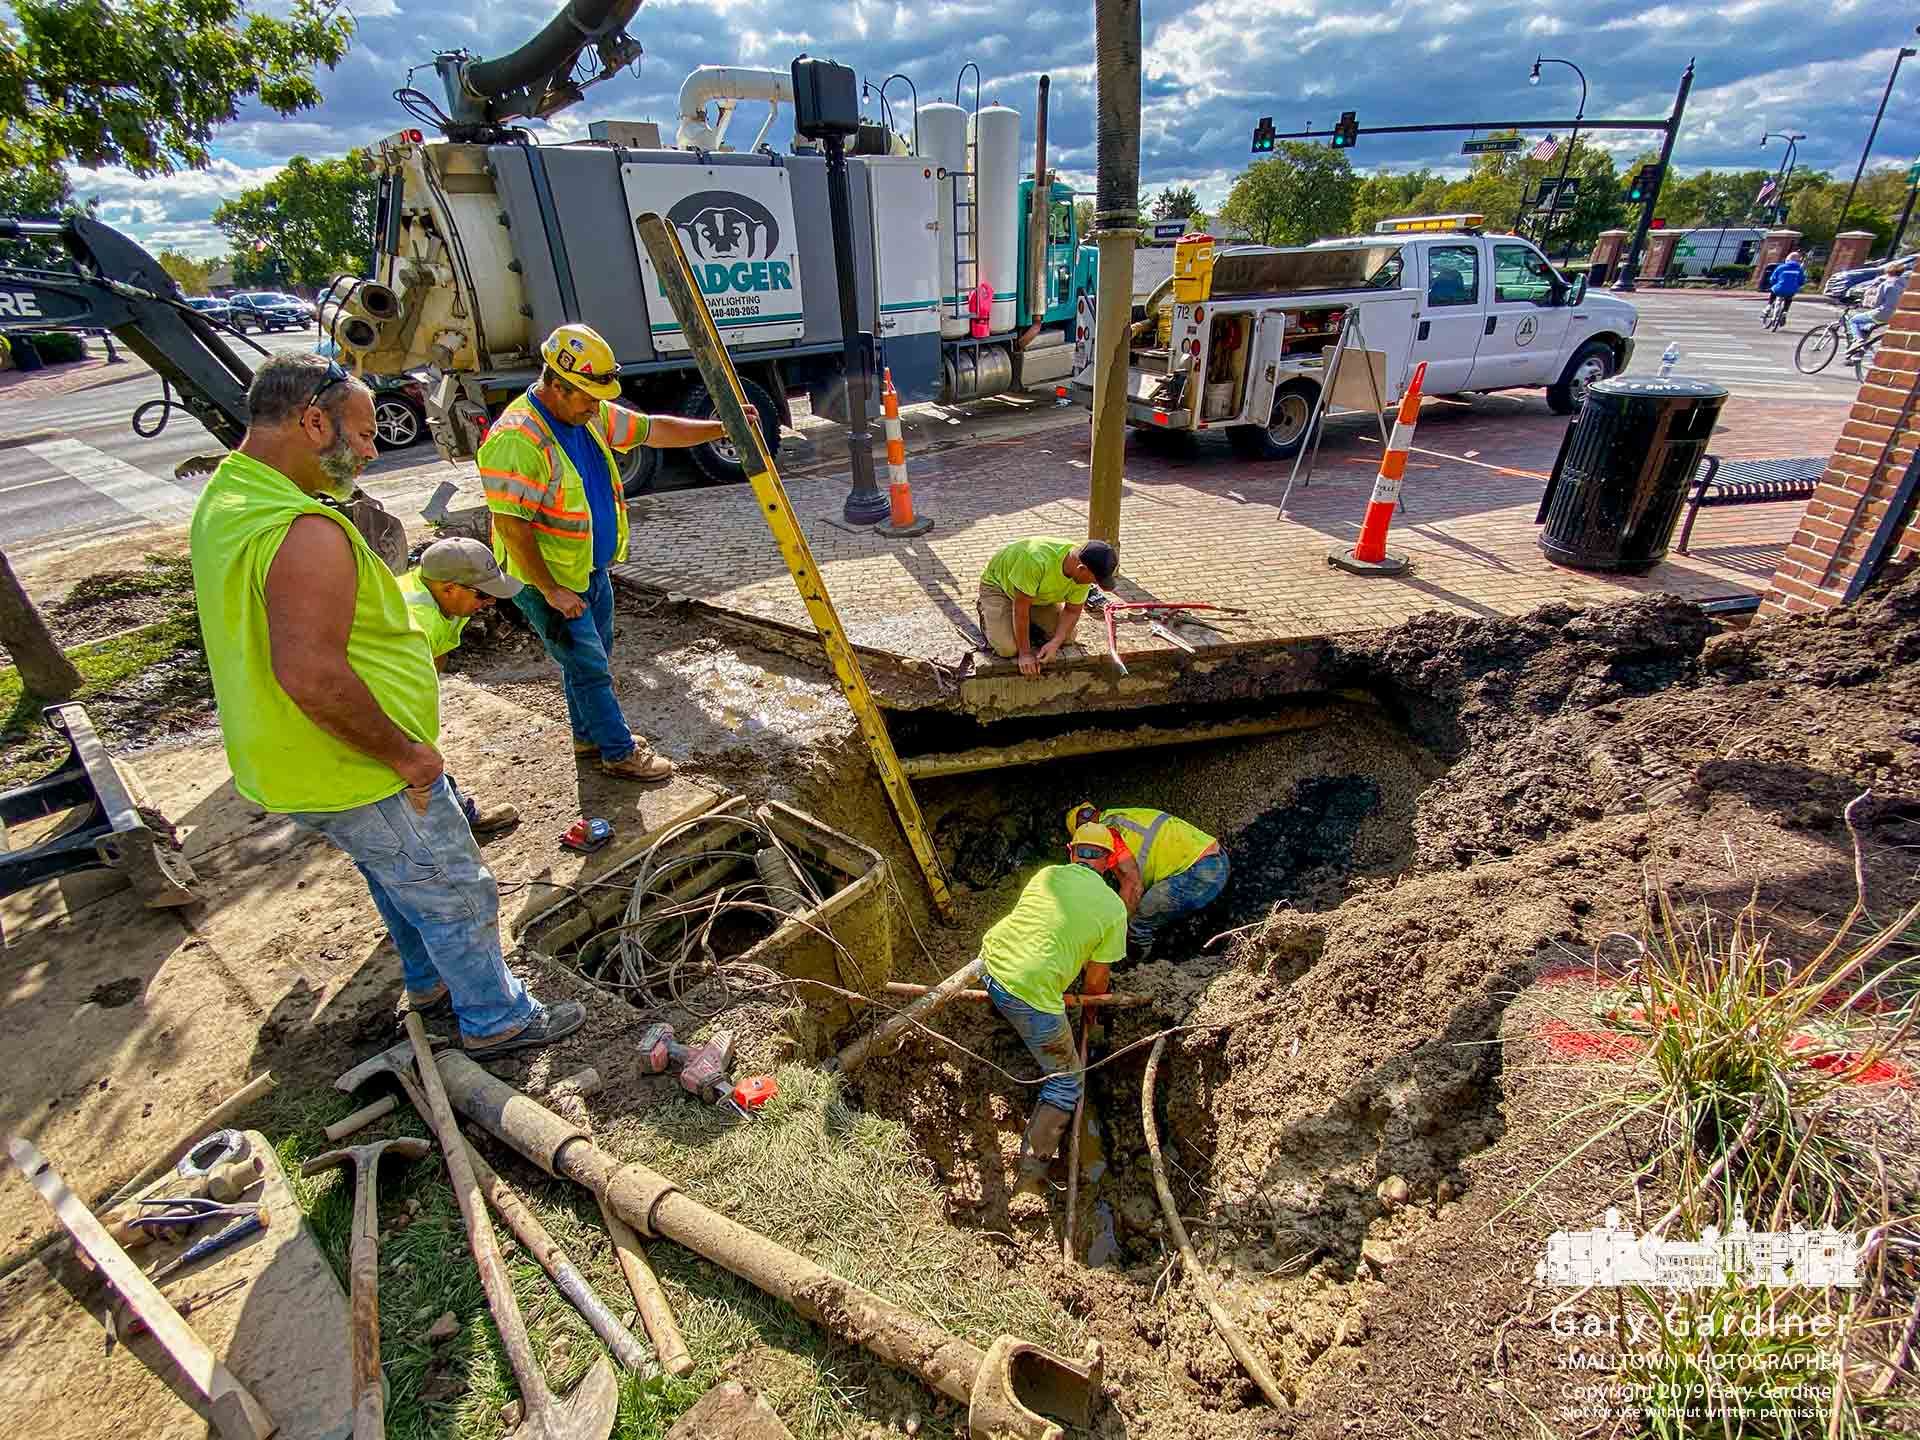 A work crew repairs the leaking water line that leads to the new First Watch restaurant being built at State and Huber Village Blvd. in Westerville. My Final Photo for Oct. 4, 2019. Photo Copyright 2019 Gary Gardiner. Not to be used without written permission detailing exact usage. Photos from Gary Gardiner, may not be redistributed, resold, or displayed by any publication or person without written permission. Photo is copyright Gary Gardiner who owns all usage rights to the image.